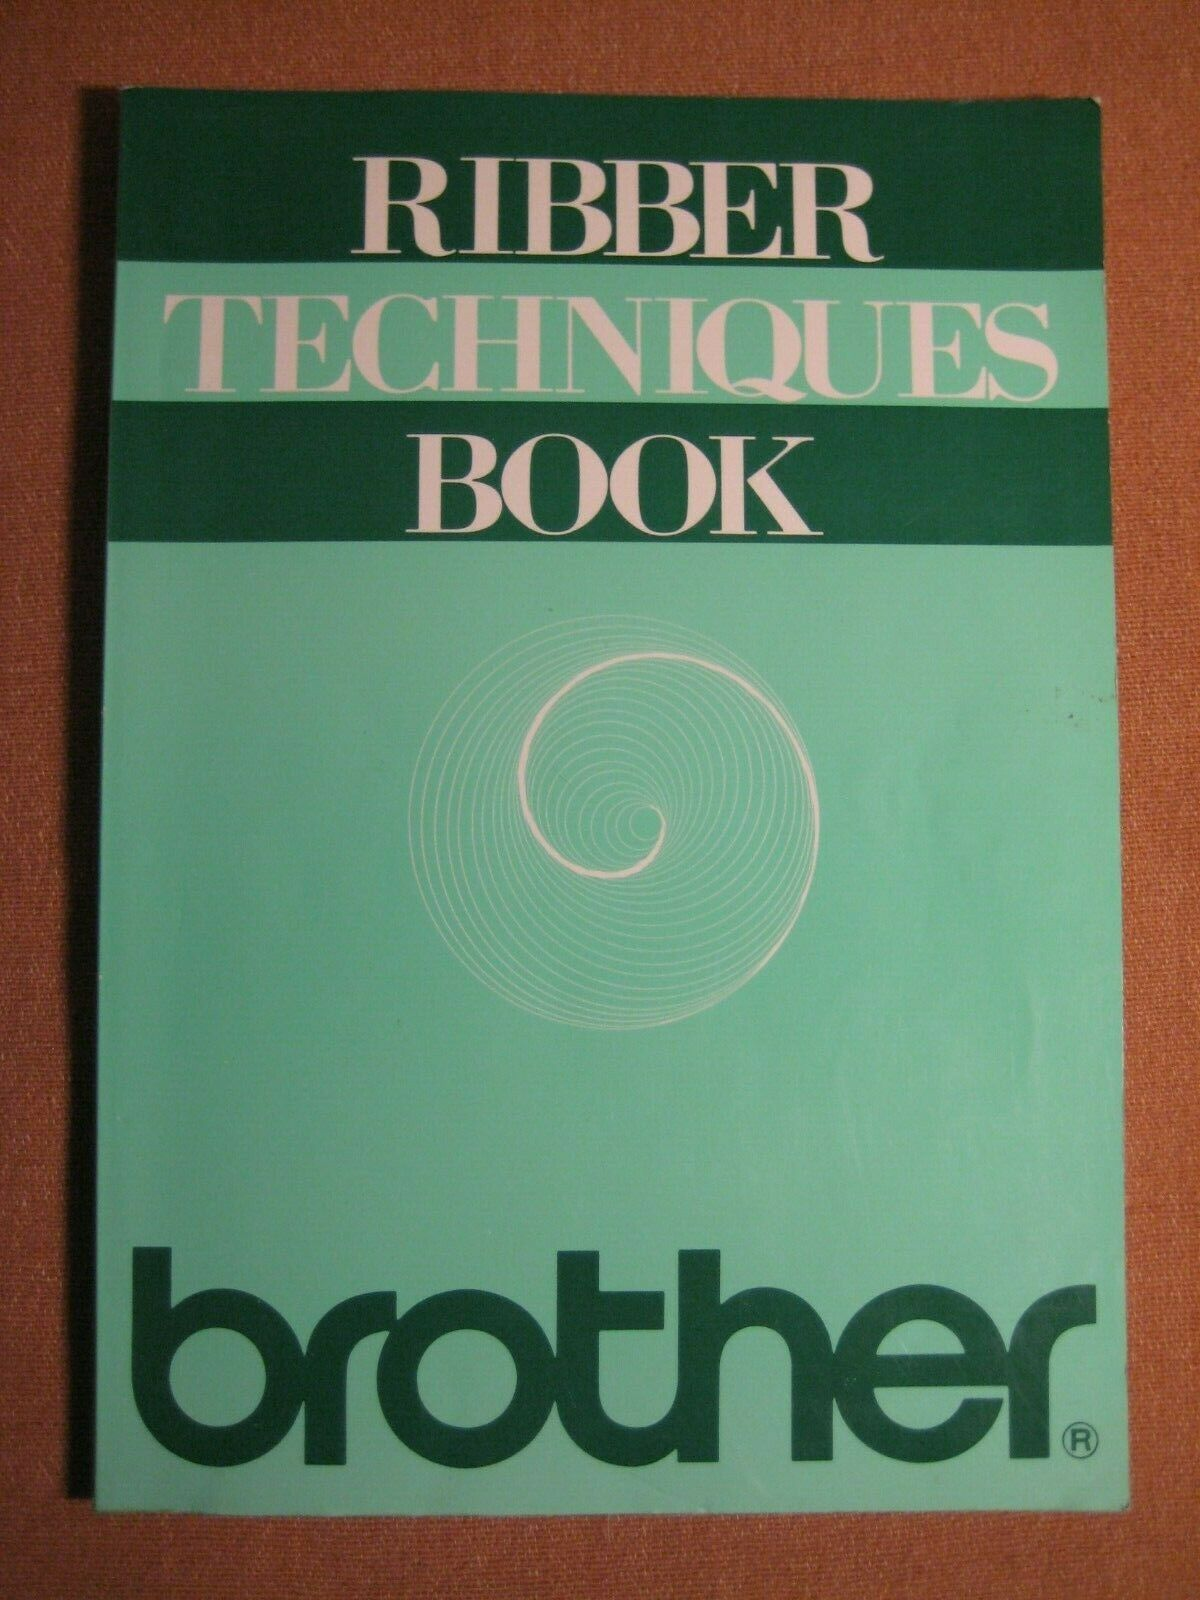 Ribber Techniques Book Knitking and other knitting machines. Brother